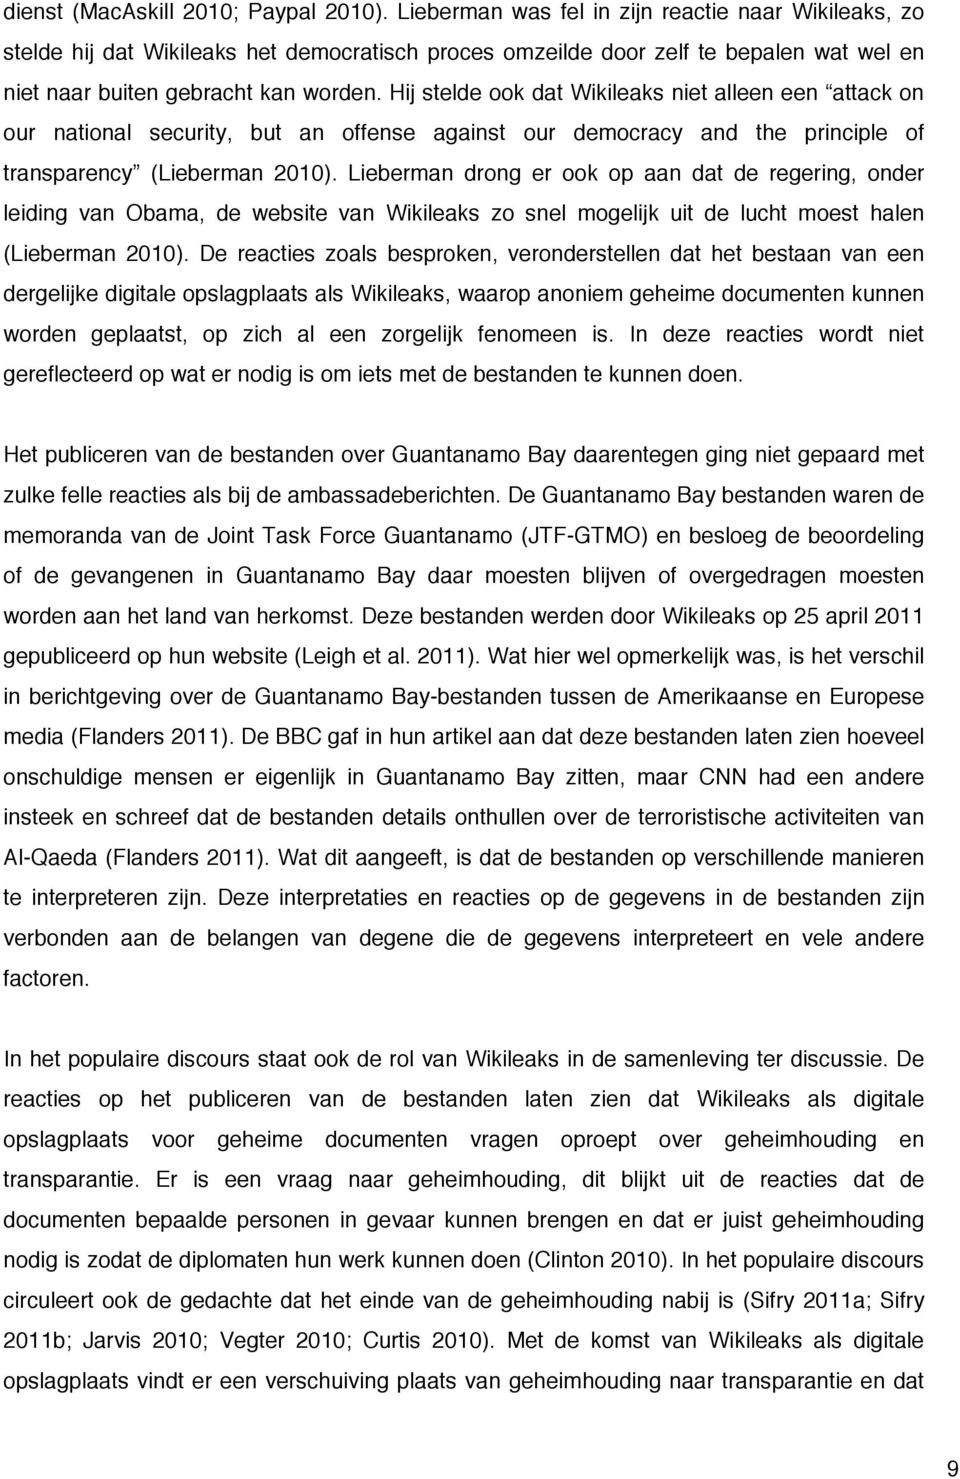 Hij stelde ook dat Wikileaks niet alleen een attack on our national security, but an offense against our democracy and the principle of transparency (Lieberman 2010).